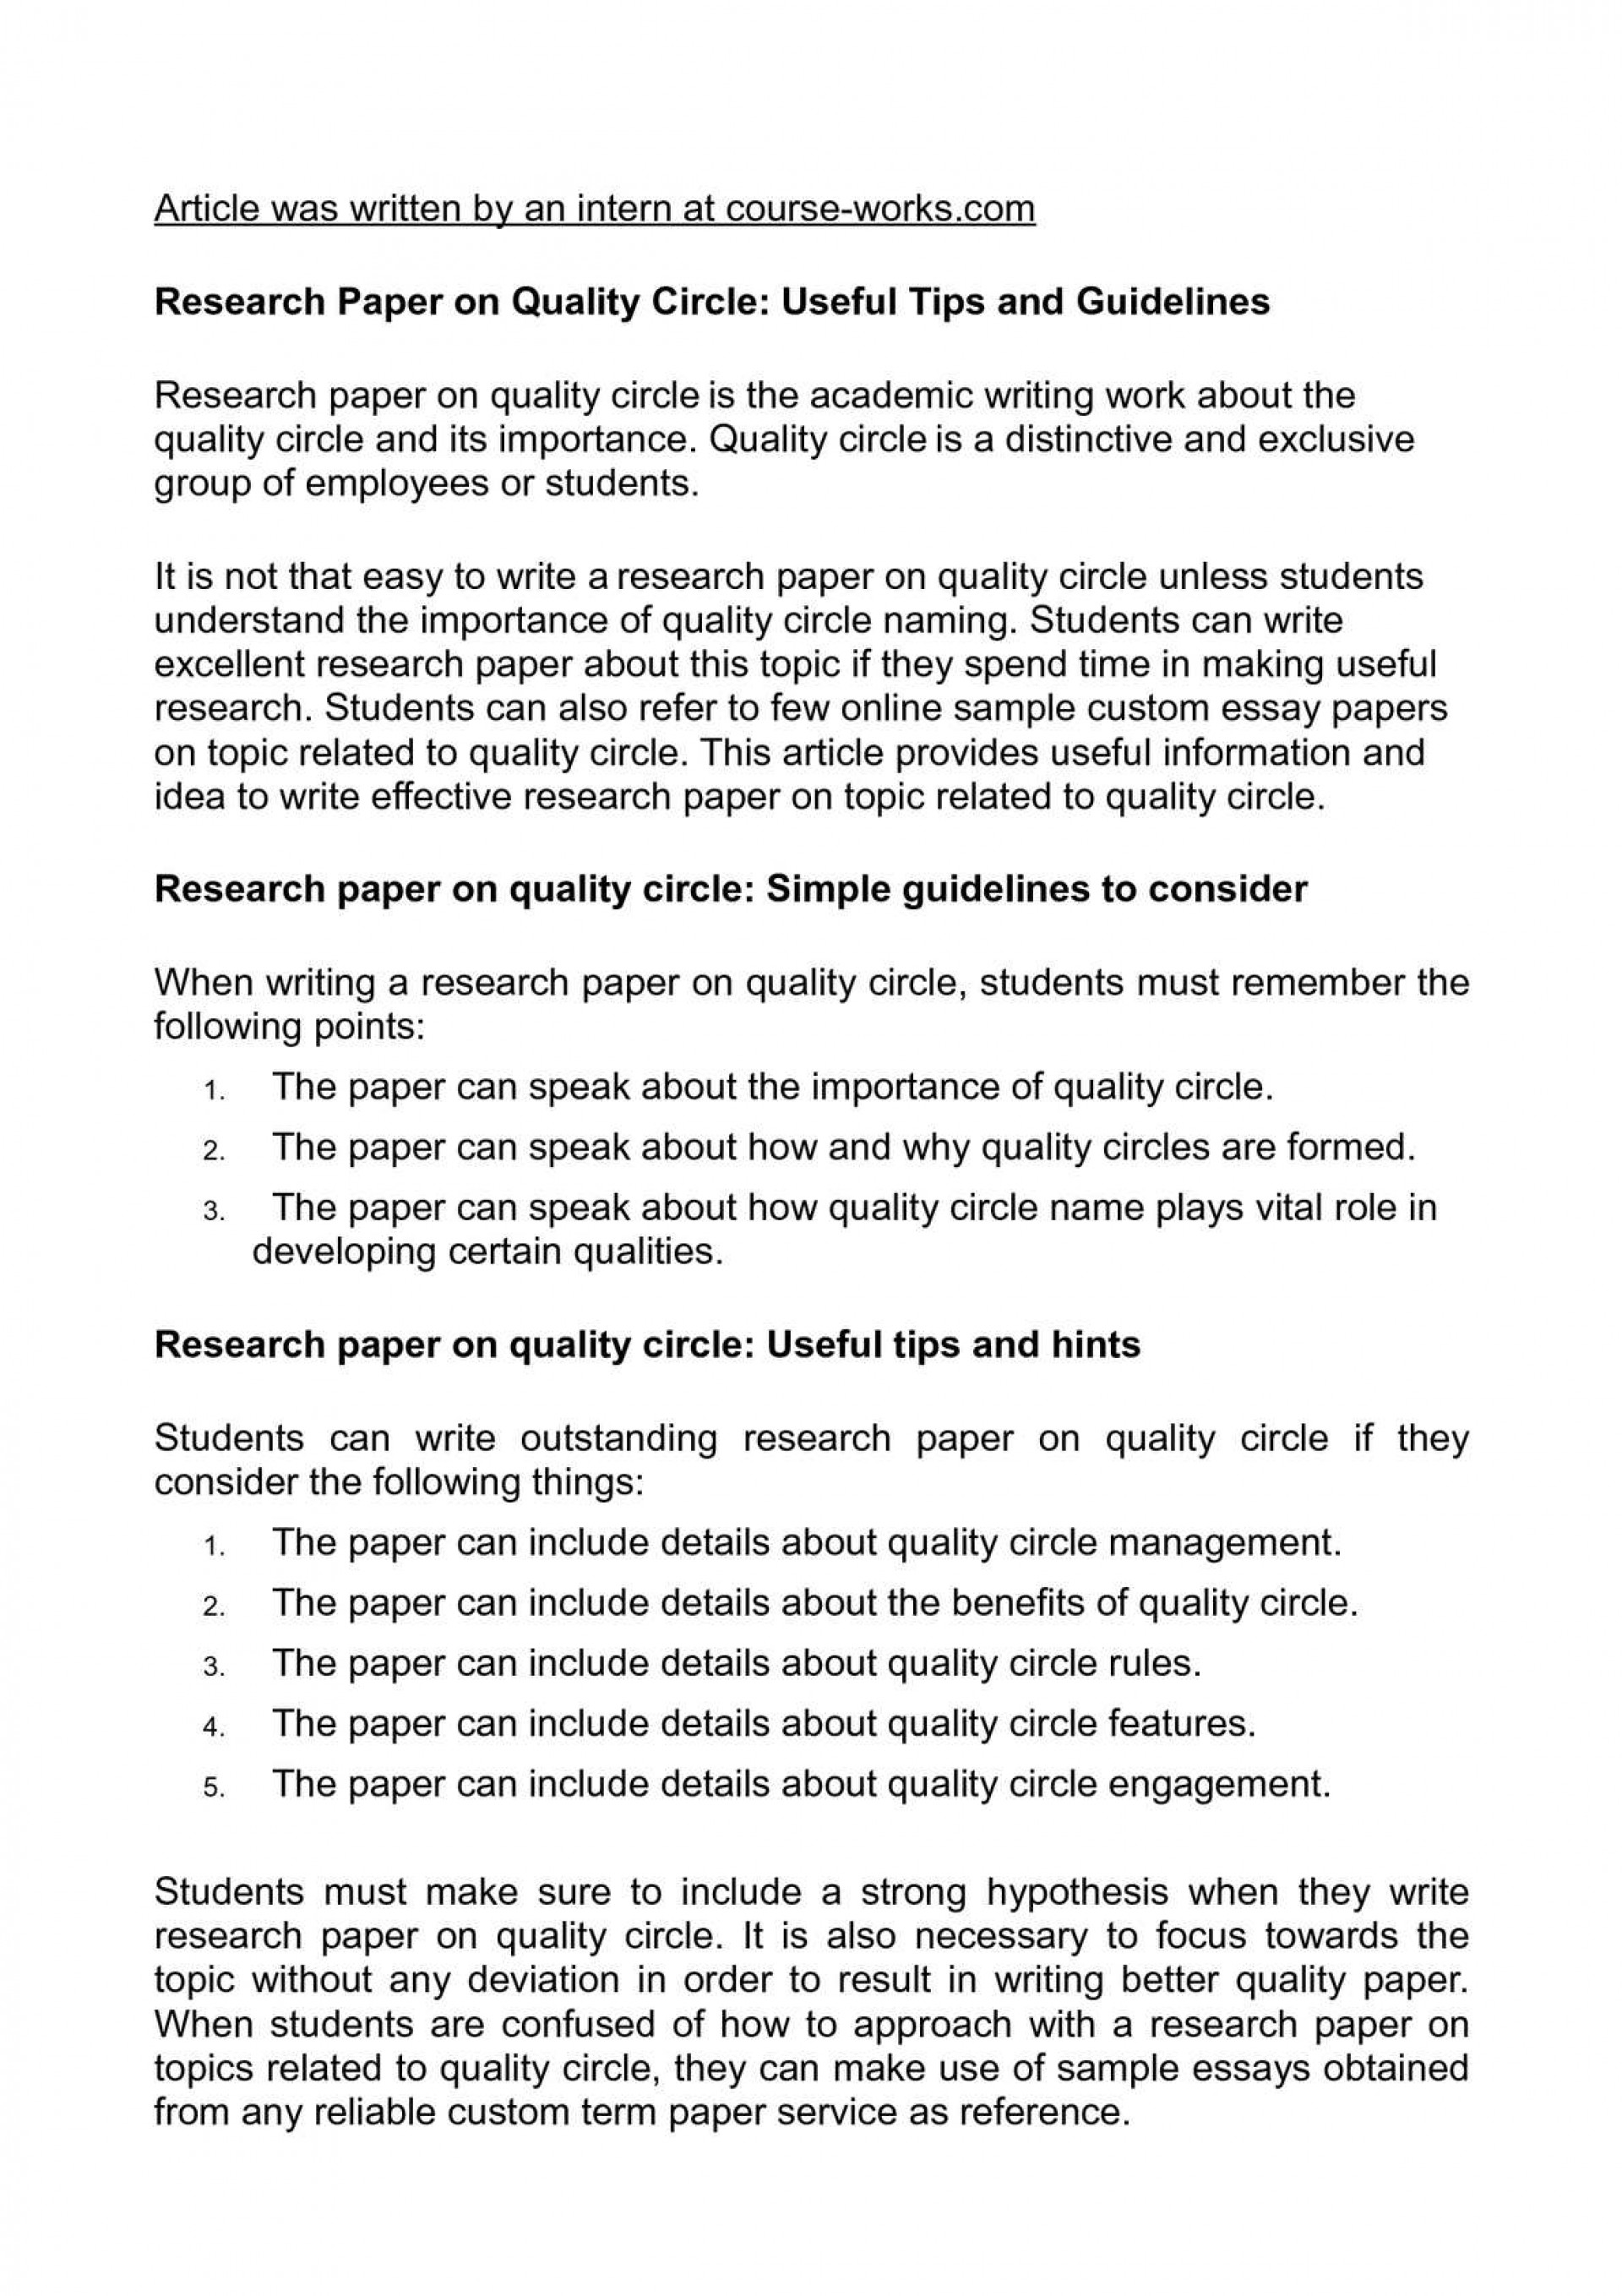 007 Research Paper Easy Topics Beautiful For College Students English 101 Psychology 1920